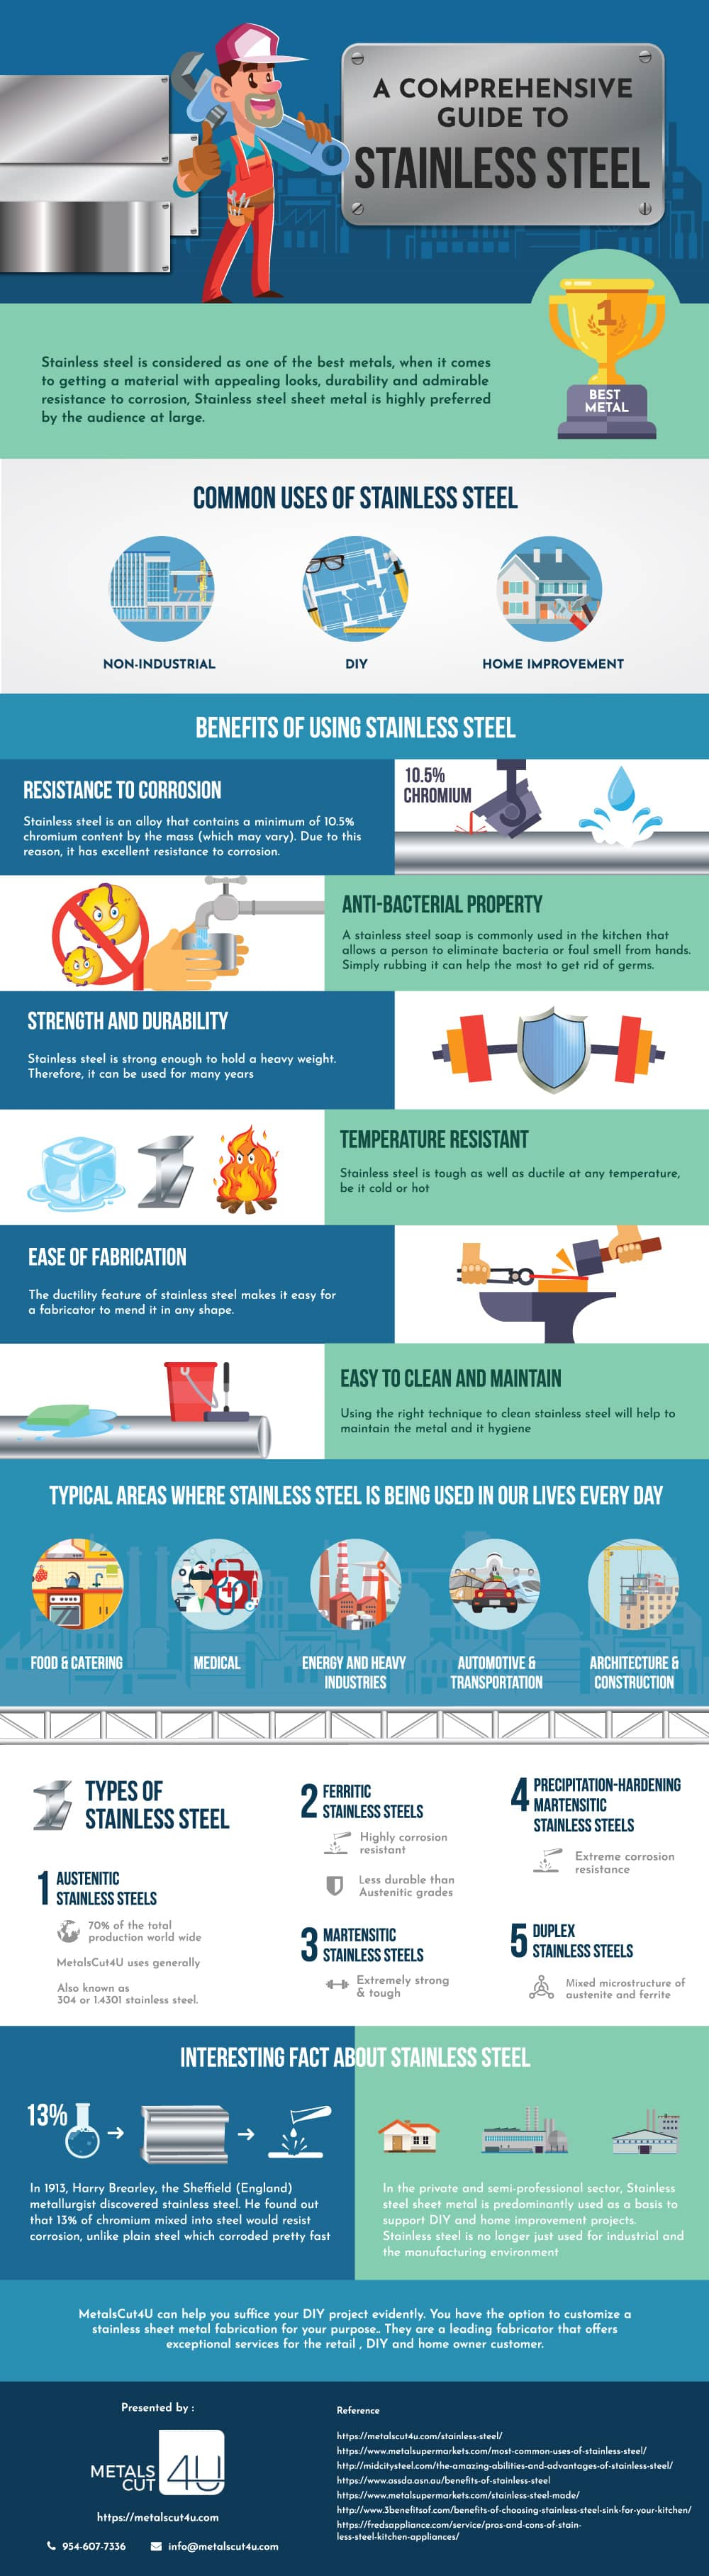 Stainless Steel Infographic